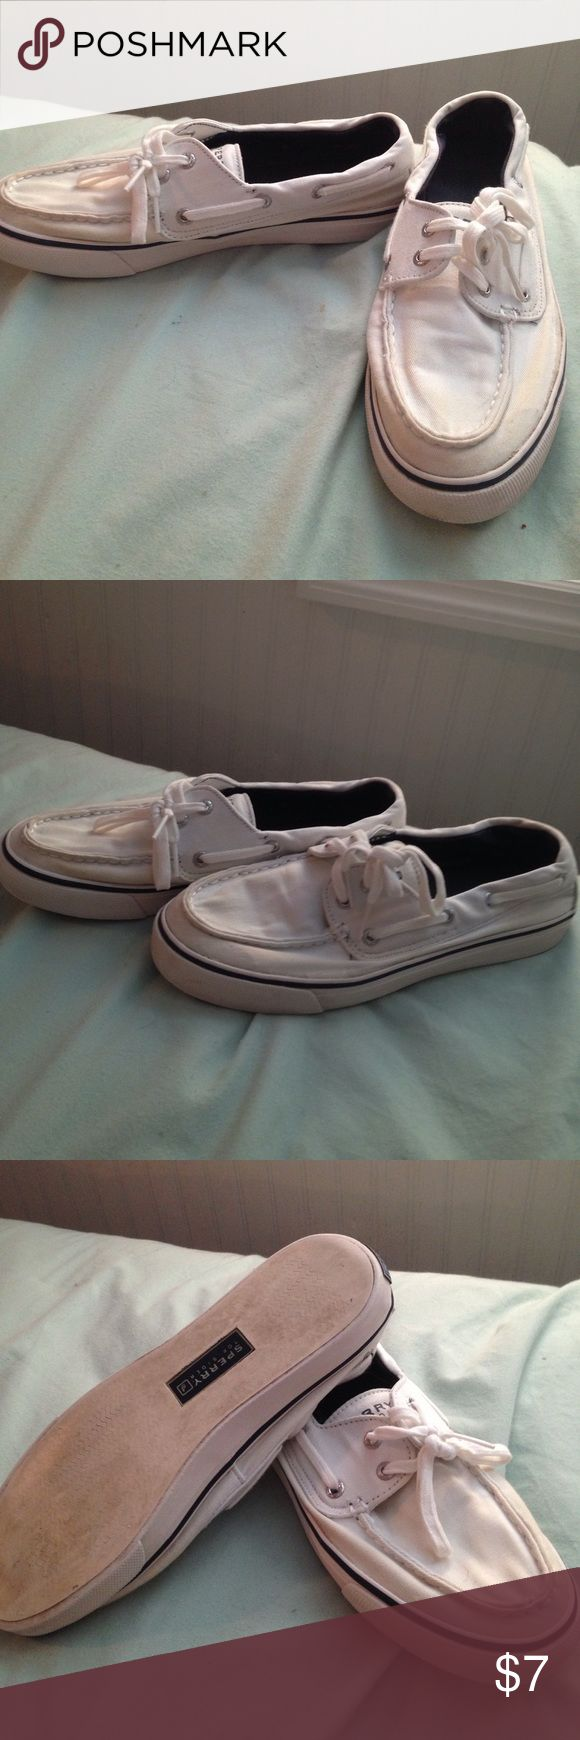 White Sperrys okay so these are worn & I tried whitening them but some parts ended up yellowing so that's why they are inexpensive. BUT they'd still be good to just have a pair of shoes you could do anything in lol Sperry Shoes